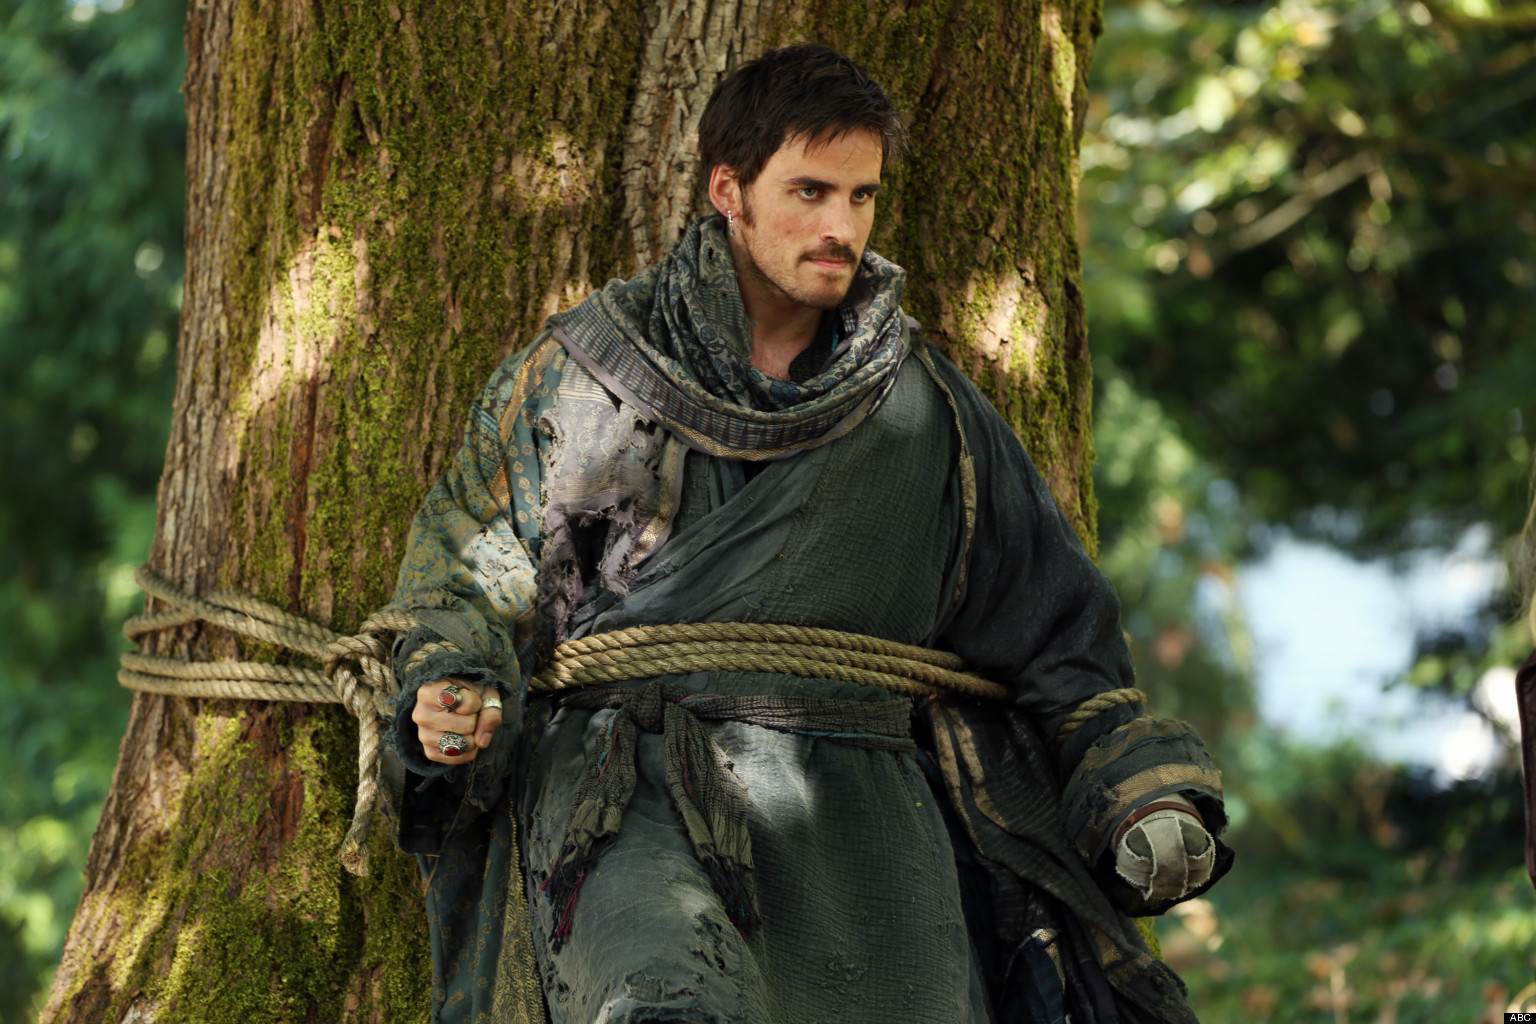 hook drowns once upon a time Captain swan is the het ship between emma swan and captain hook from the once upon a time fandom in the episode there's no place like home(3x22), captain hook, also known as killian jones, reveals that he traded his ship for emma in order to save her family following this confession, emma.